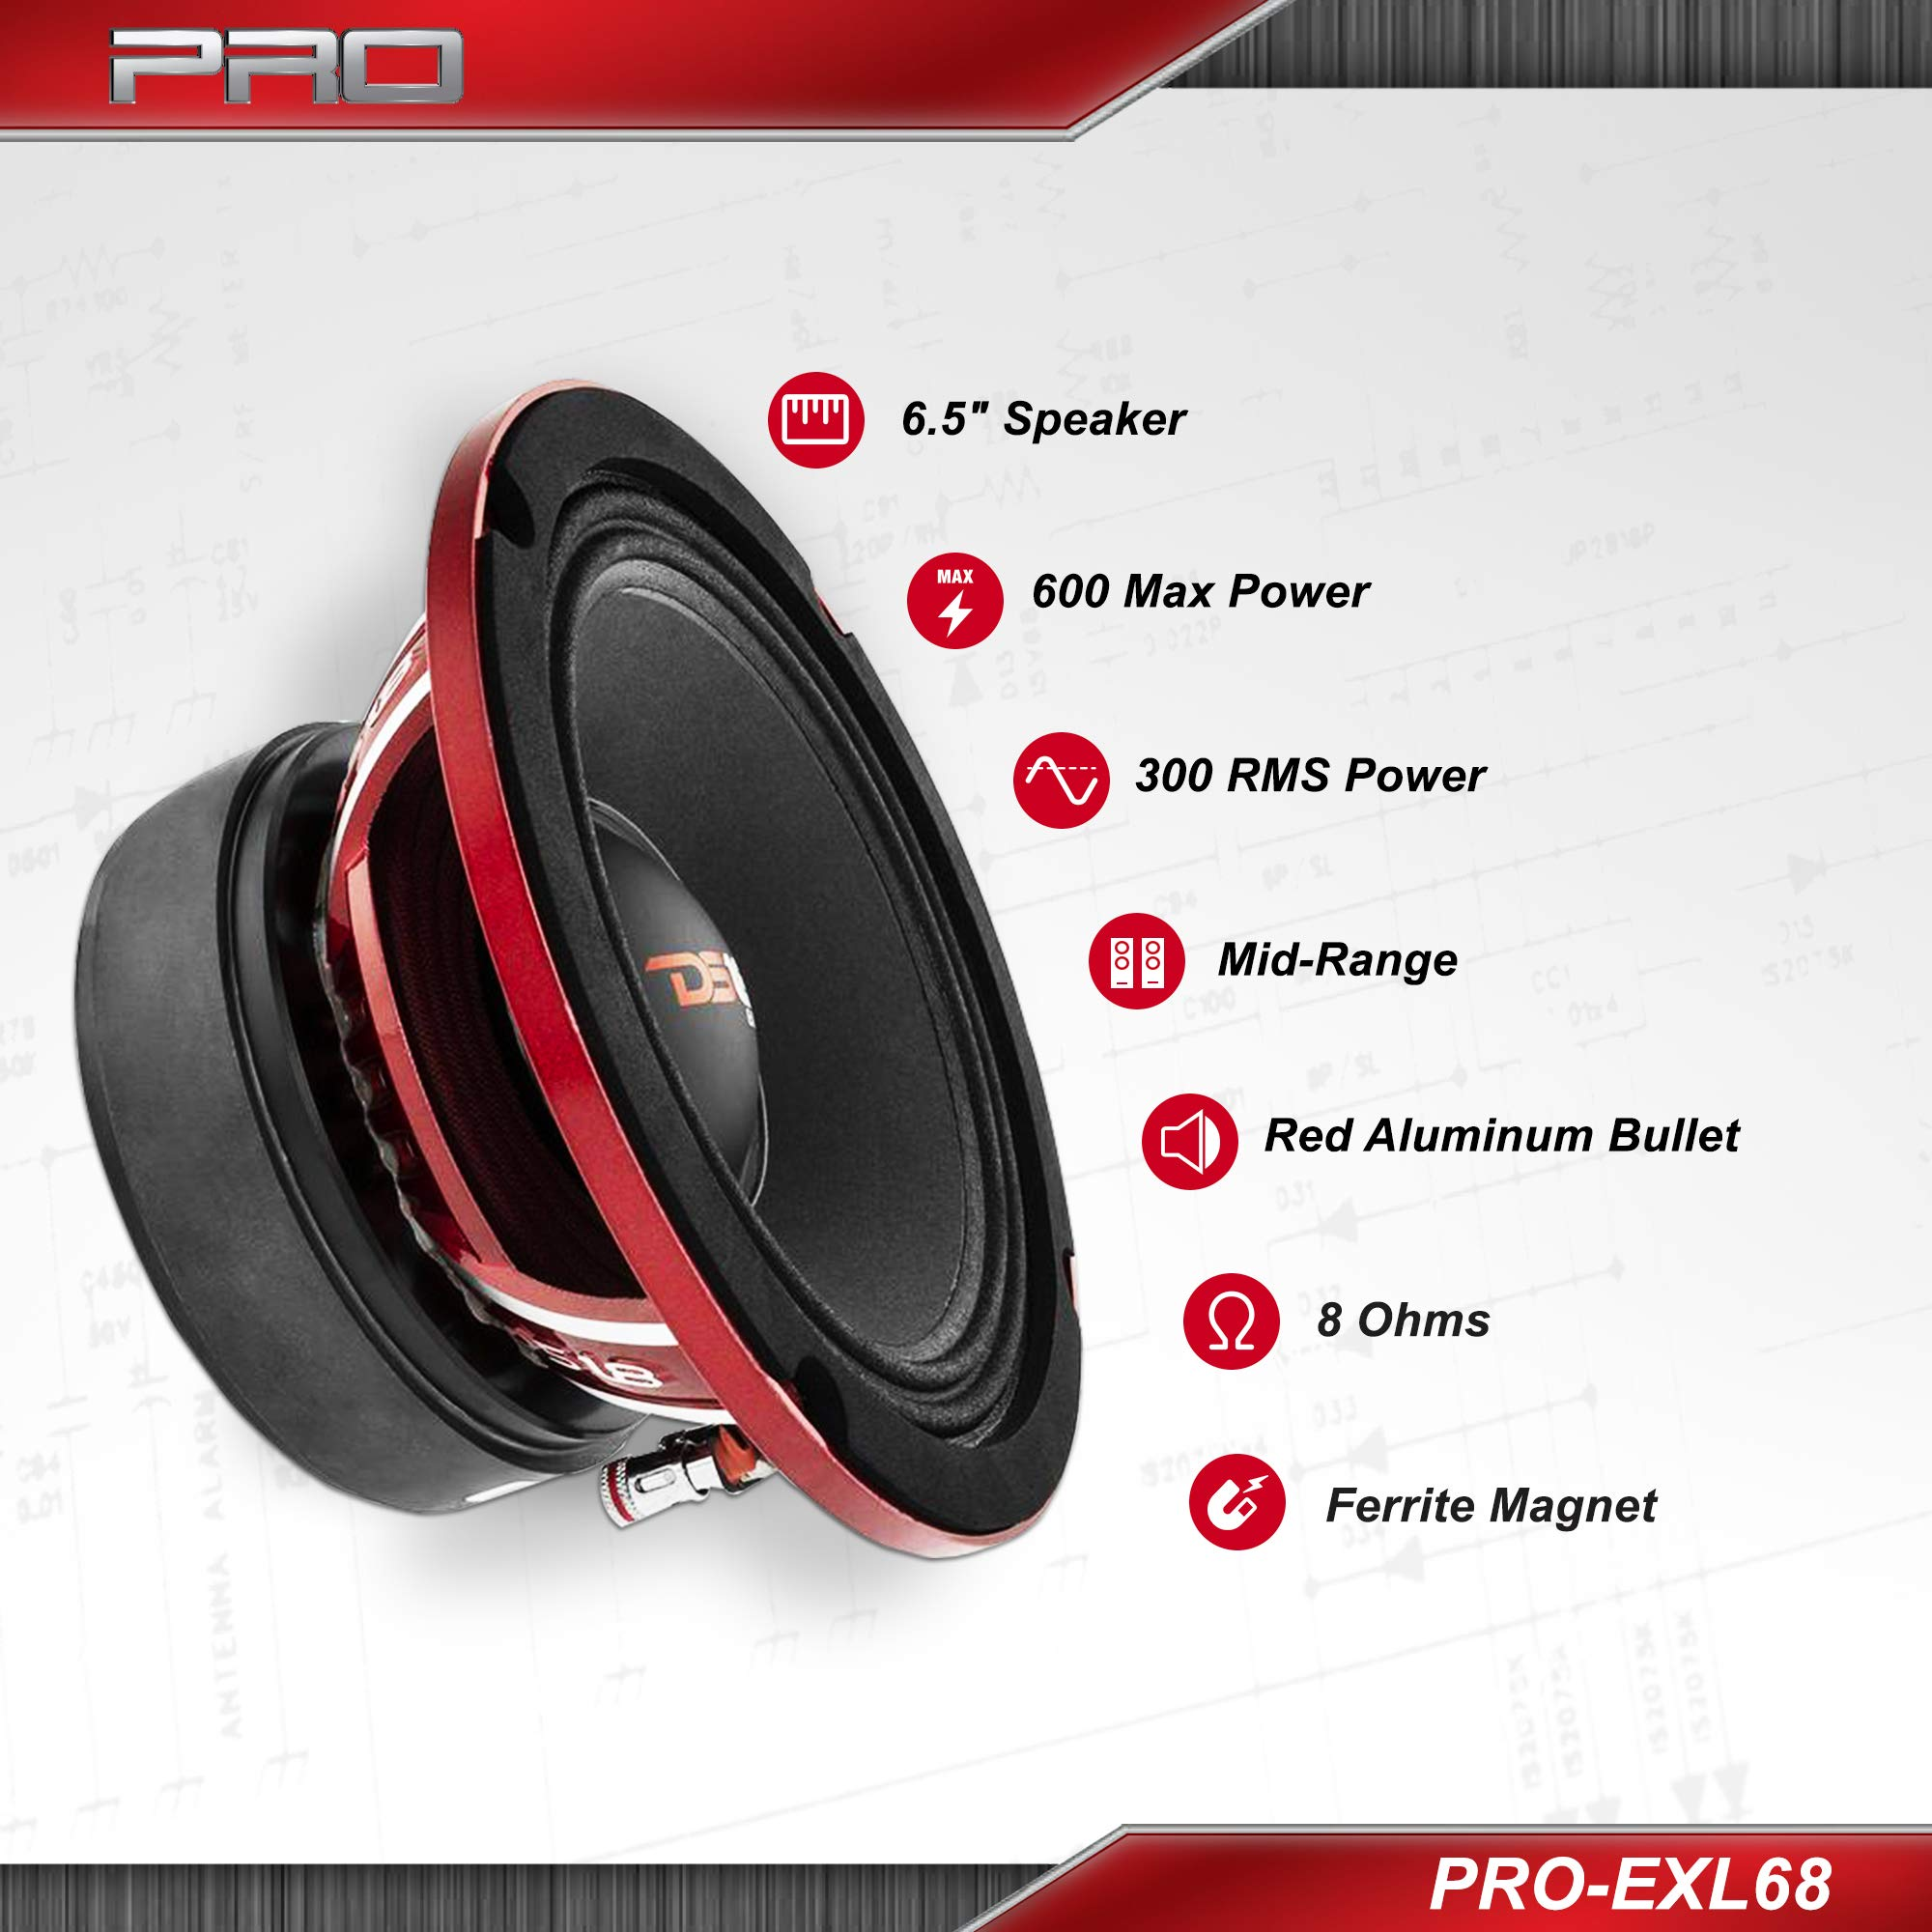 DS18 PRO-EXL68 Loudspeaker - 6.5'', Midrange, Red Aluminum Bullet, 600W Max, 300W RMS, 8 Ohms, Ferrite Magnet - For the Peple Who Live and Breathe Car Audio (1 Speaker) by DS18 (Image #2)